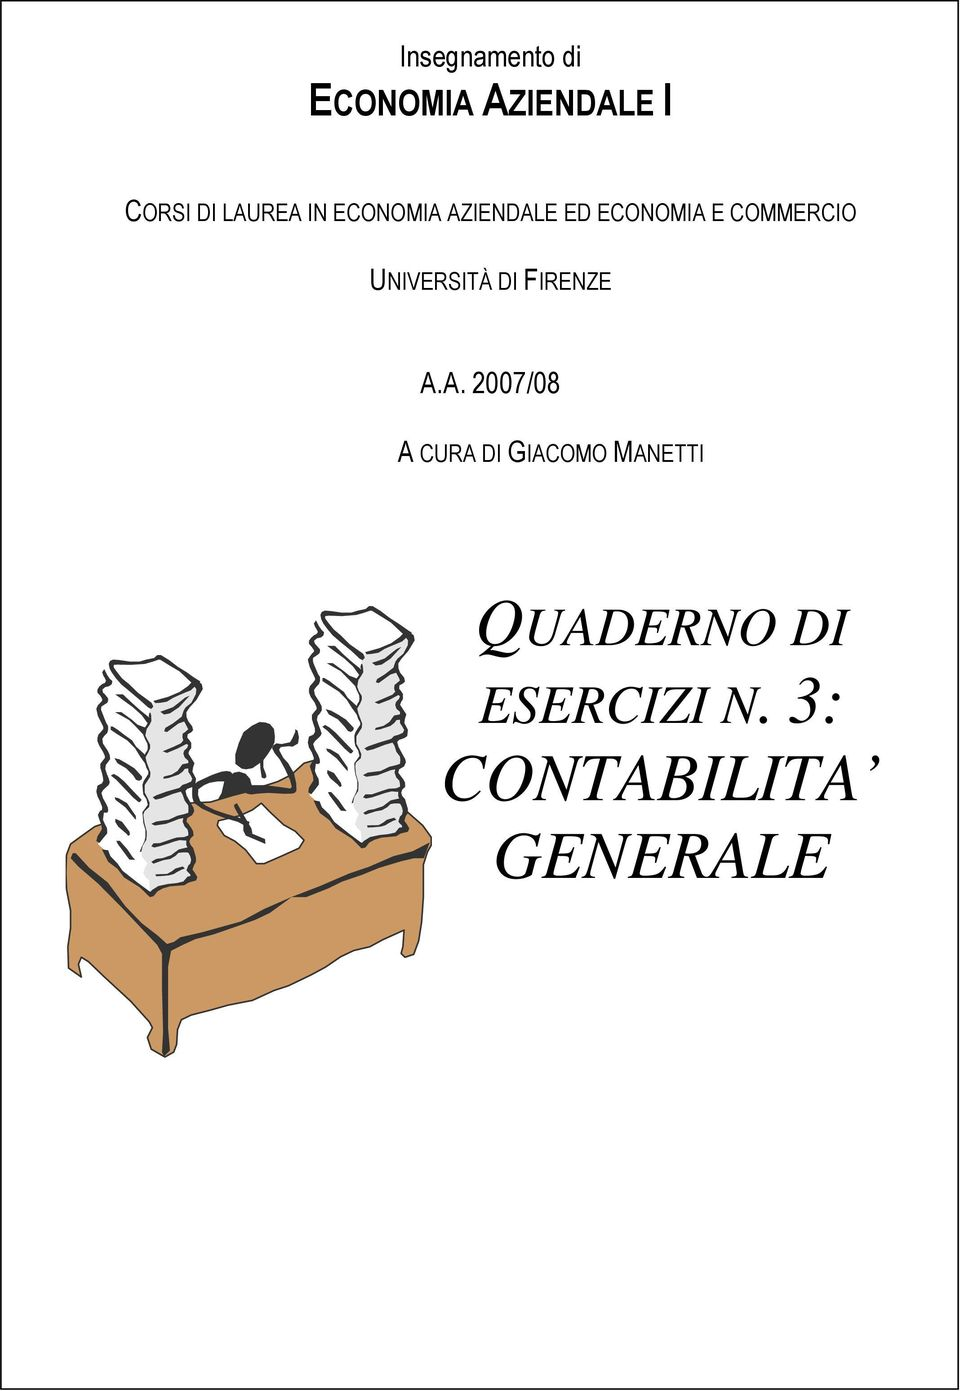 COMMERCIO UNIVERSITÀ DI FIRENZE A.